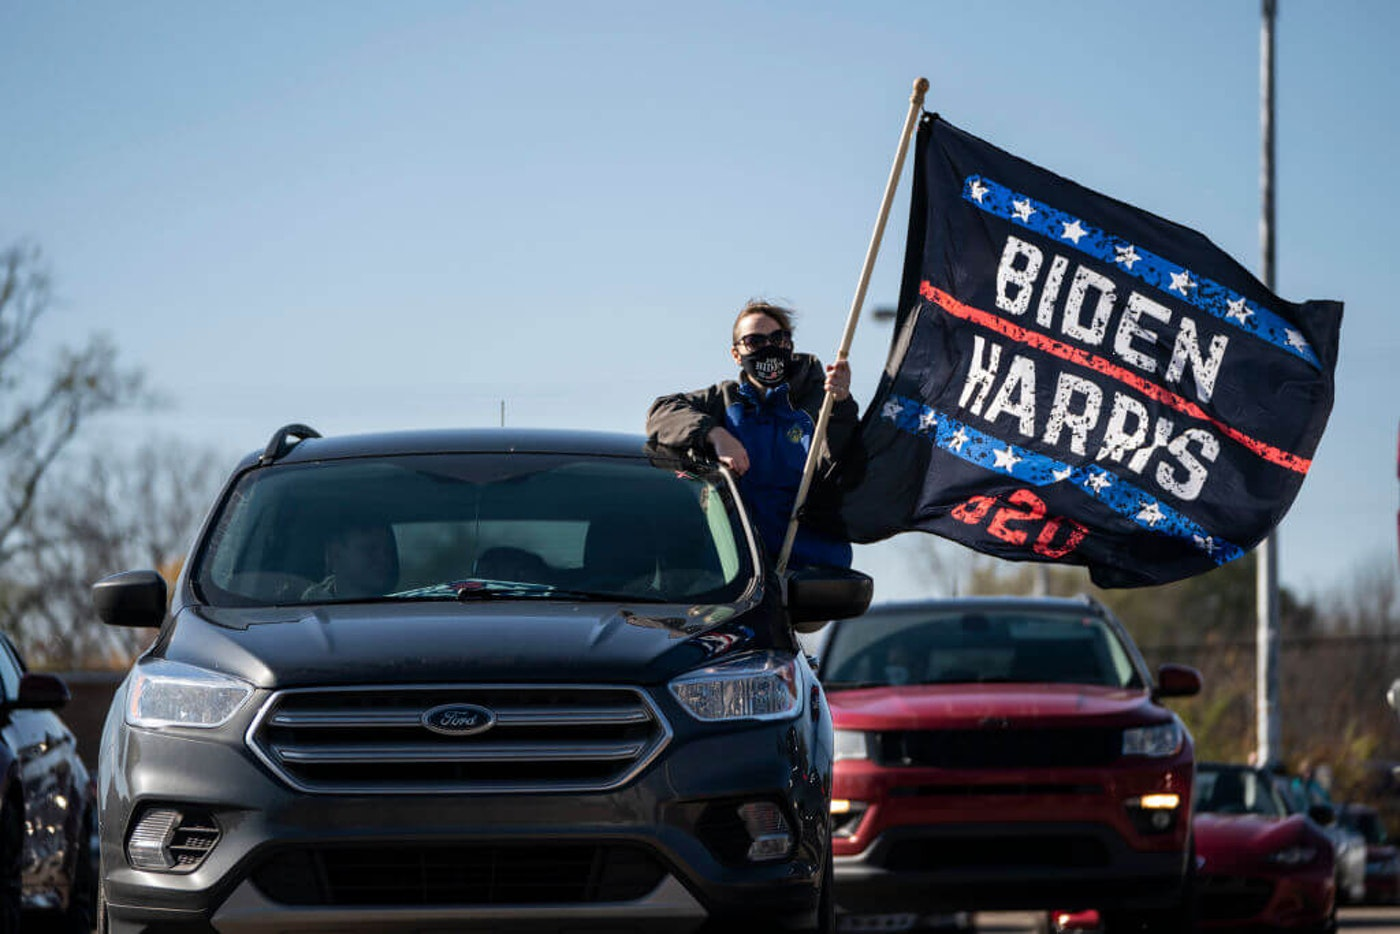 FLINT, MI - OCTOBER 31: Supporters listen in their cars as former President Barack Obama speaks during a drive-in campaign rally for Democratic presidential nominee Joe Biden at Northwestern High School on October 31, 2020 in Flint, Michigan. Biden is campaigning with former President Obama on Saturday in Michigan, a battleground state that President Donald Trump narrowly won in 2016.